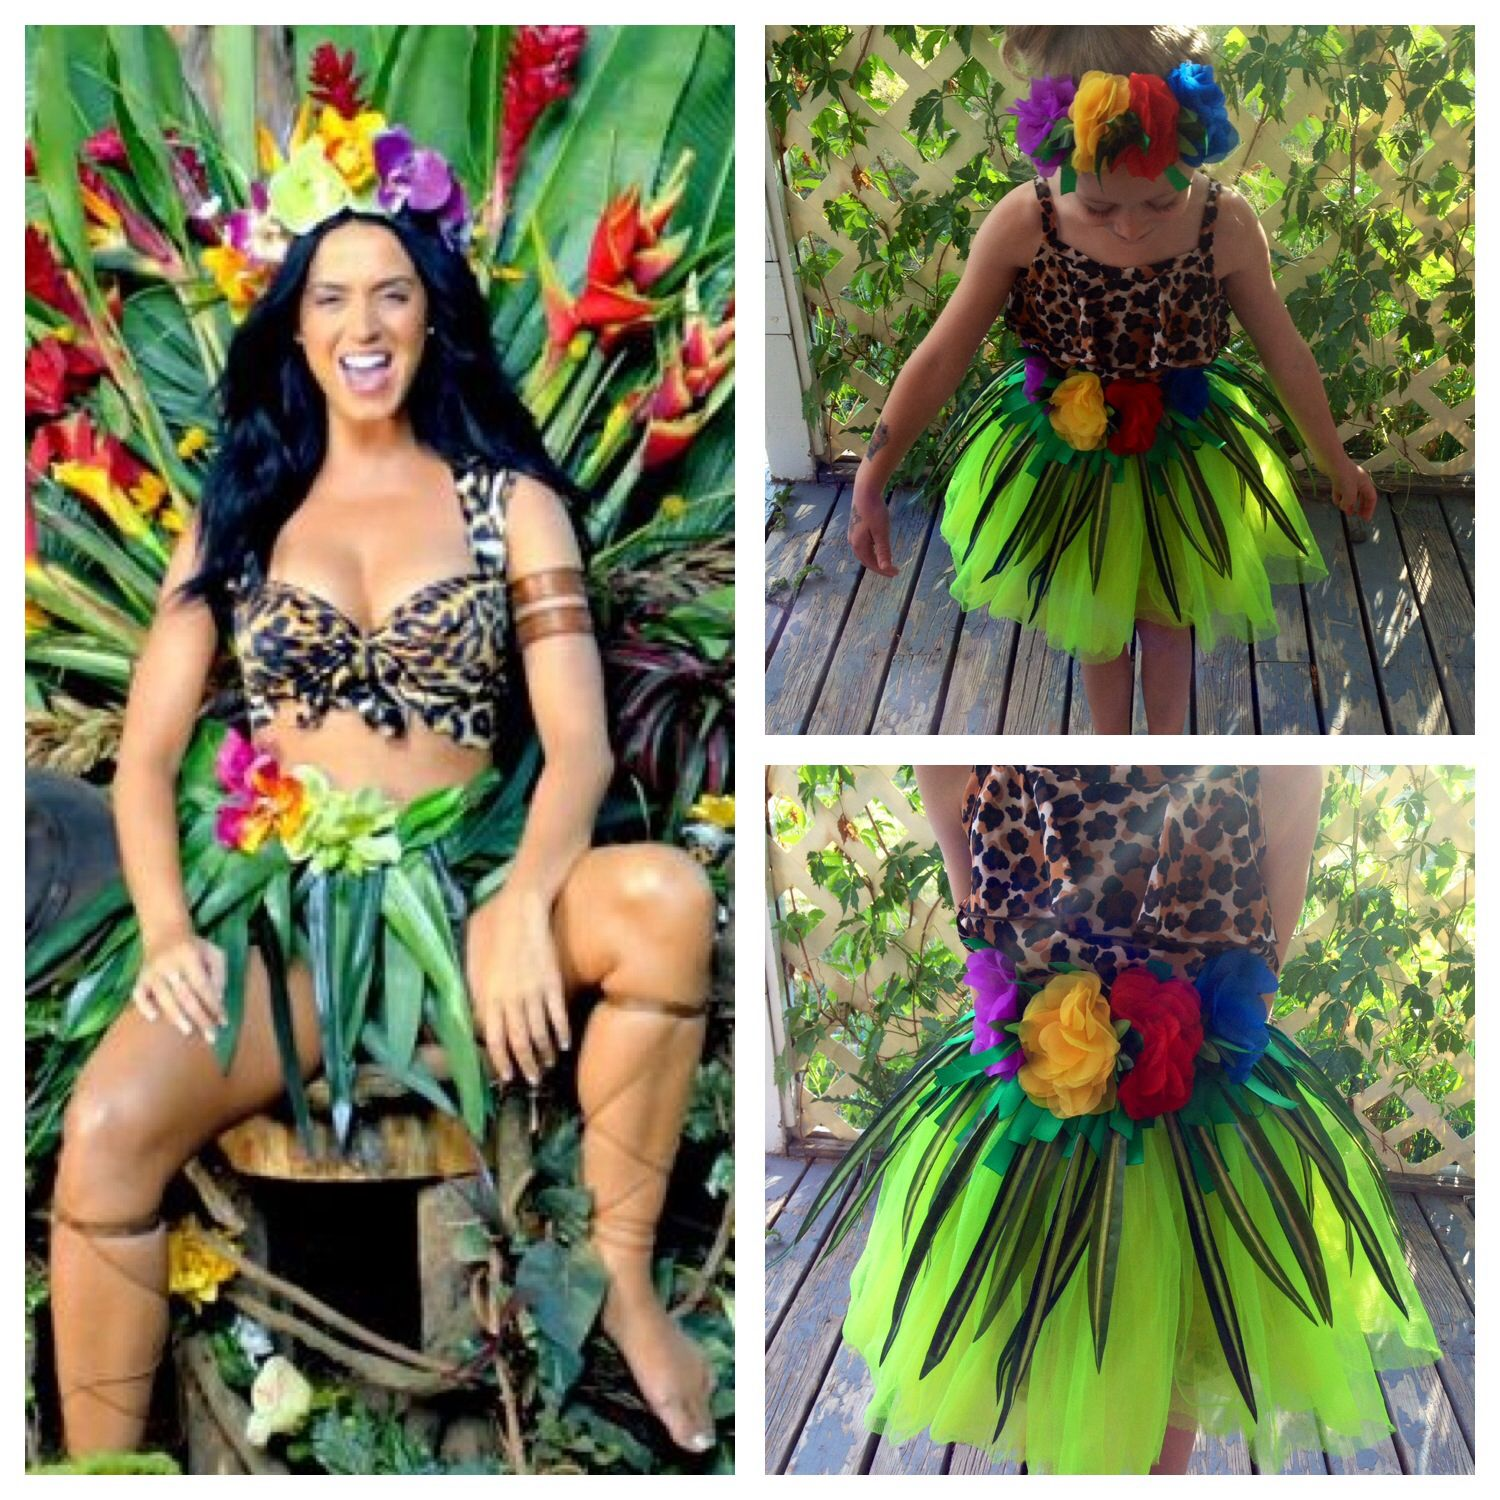 My easy no sew diy version of katy perrys roar costume for my 5 my easy no sew diy version of katy perrys roar costume for my 5 yr old solutioingenieria Images